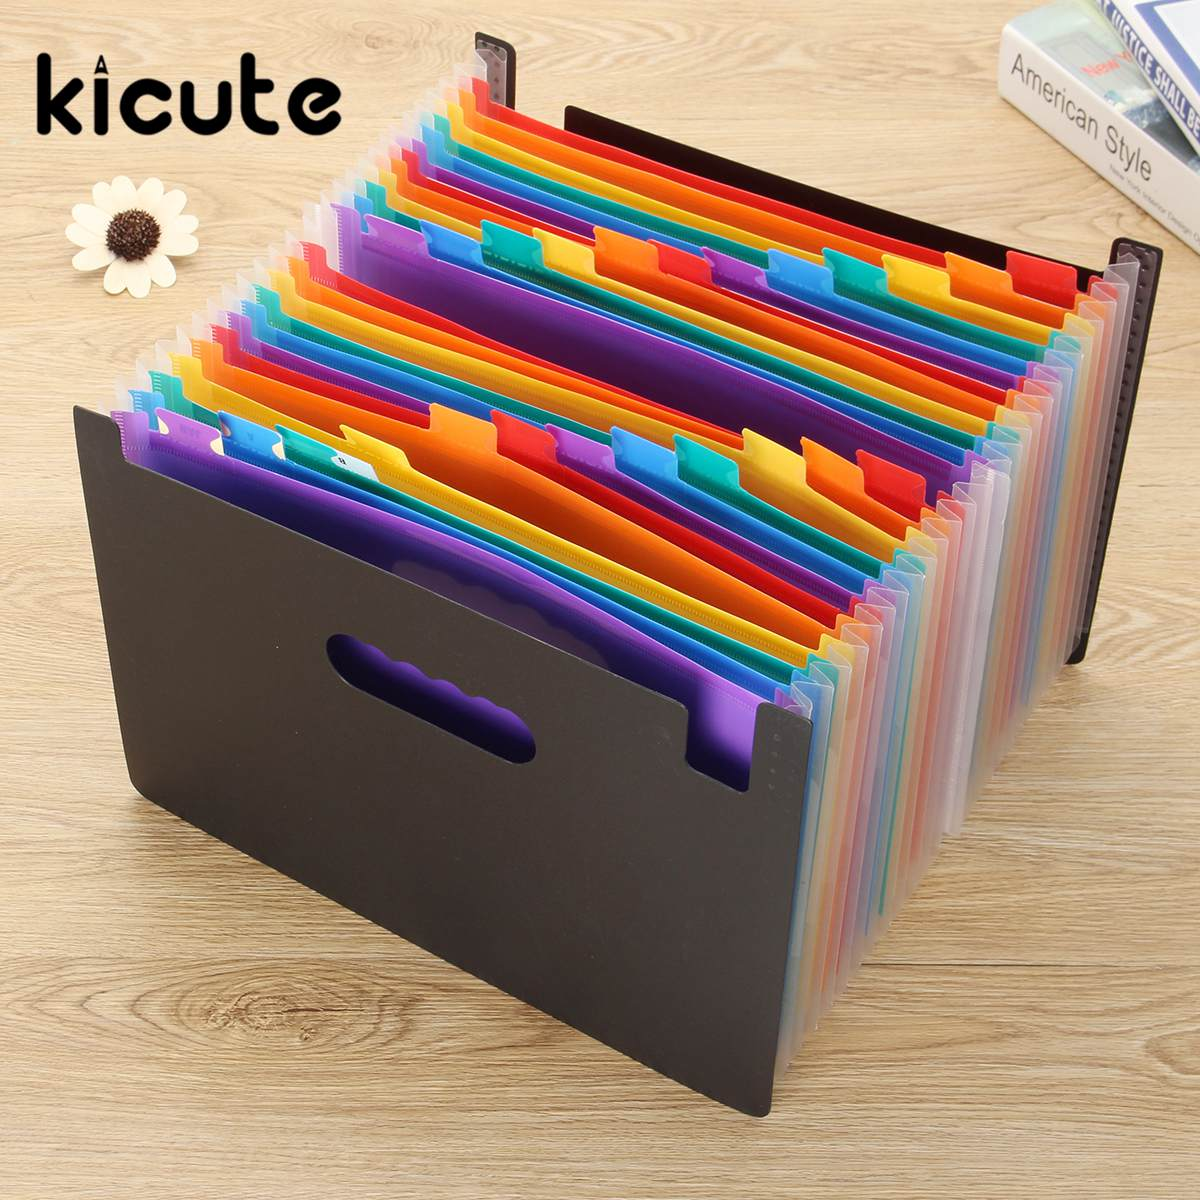 Kicute 1pcs High Capacity Multicolour Stand Expandable Portable Accordion A4 File Rainbow Document Bag Office School Supplies high quality large capacity portable a4 document bag durable stationery business files organizer school office supplies